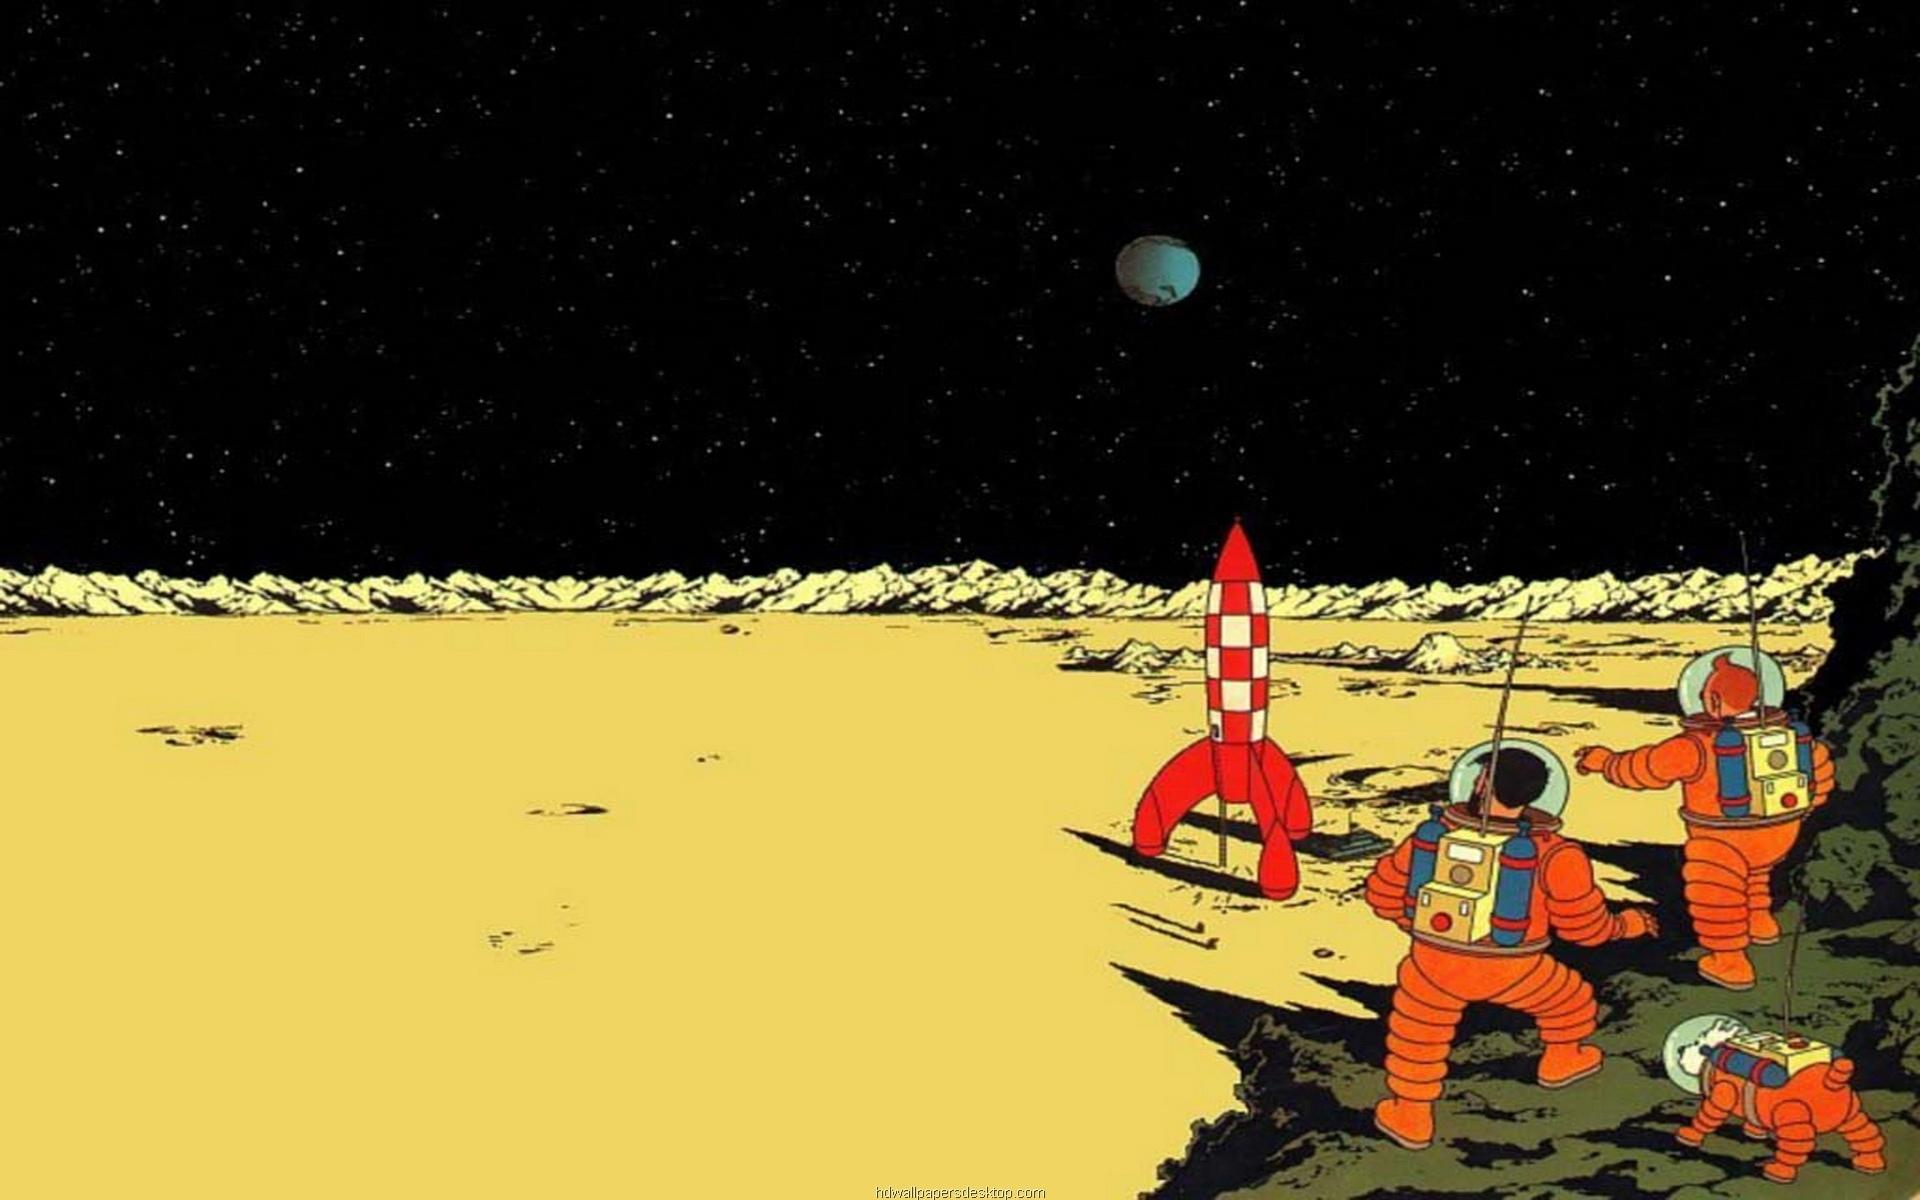 The Adventures Of Tintin at 1152 x 864 size wallpapers HD quality